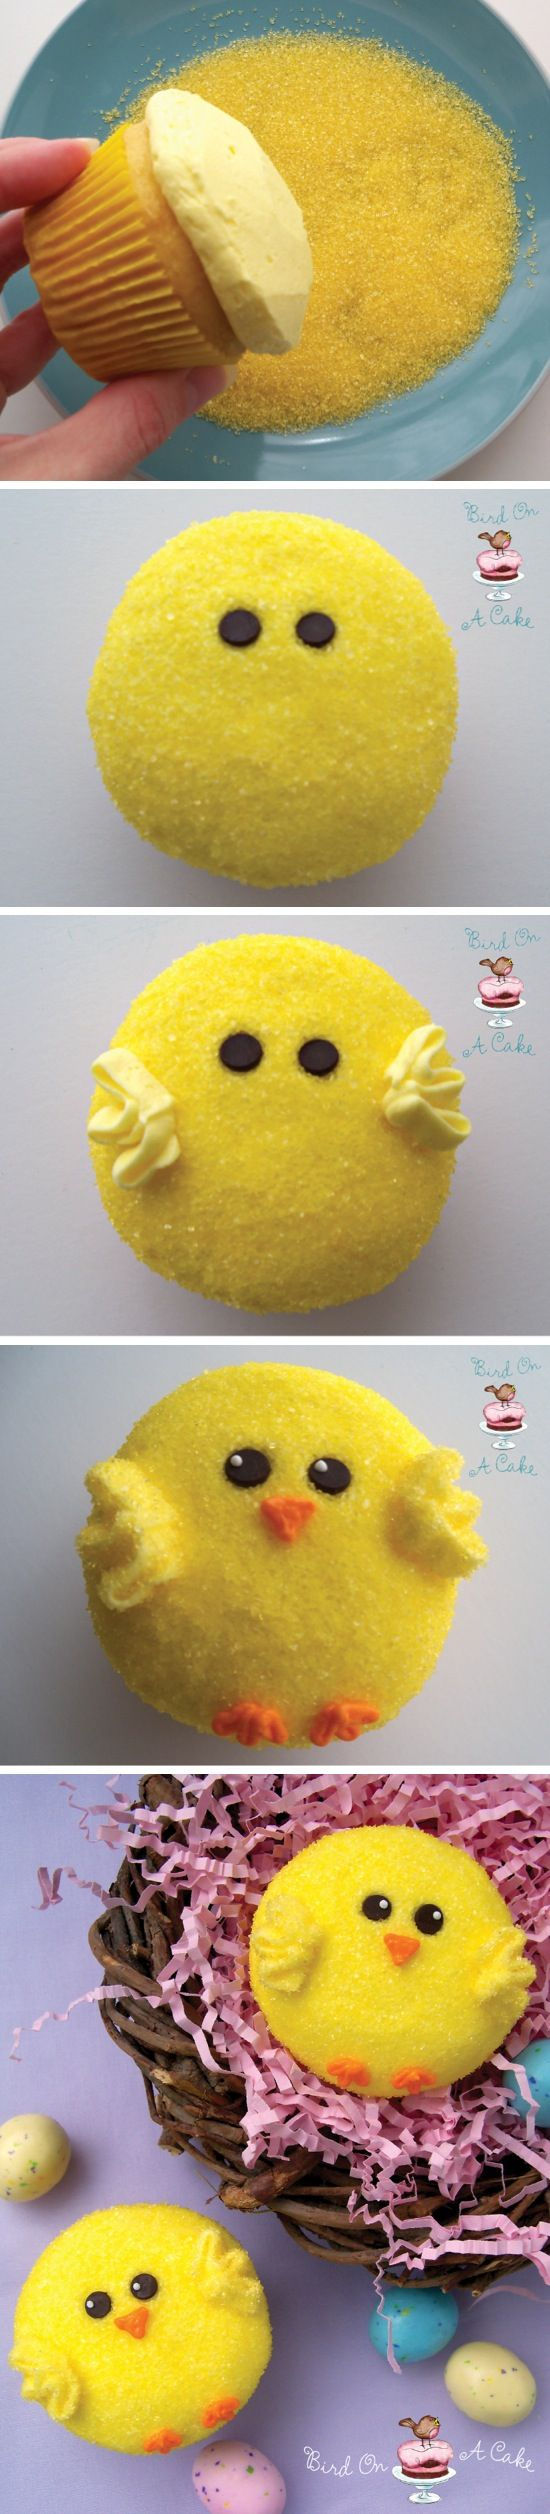 Easter-Chick-Cupcakes-Recipe-By-Photo